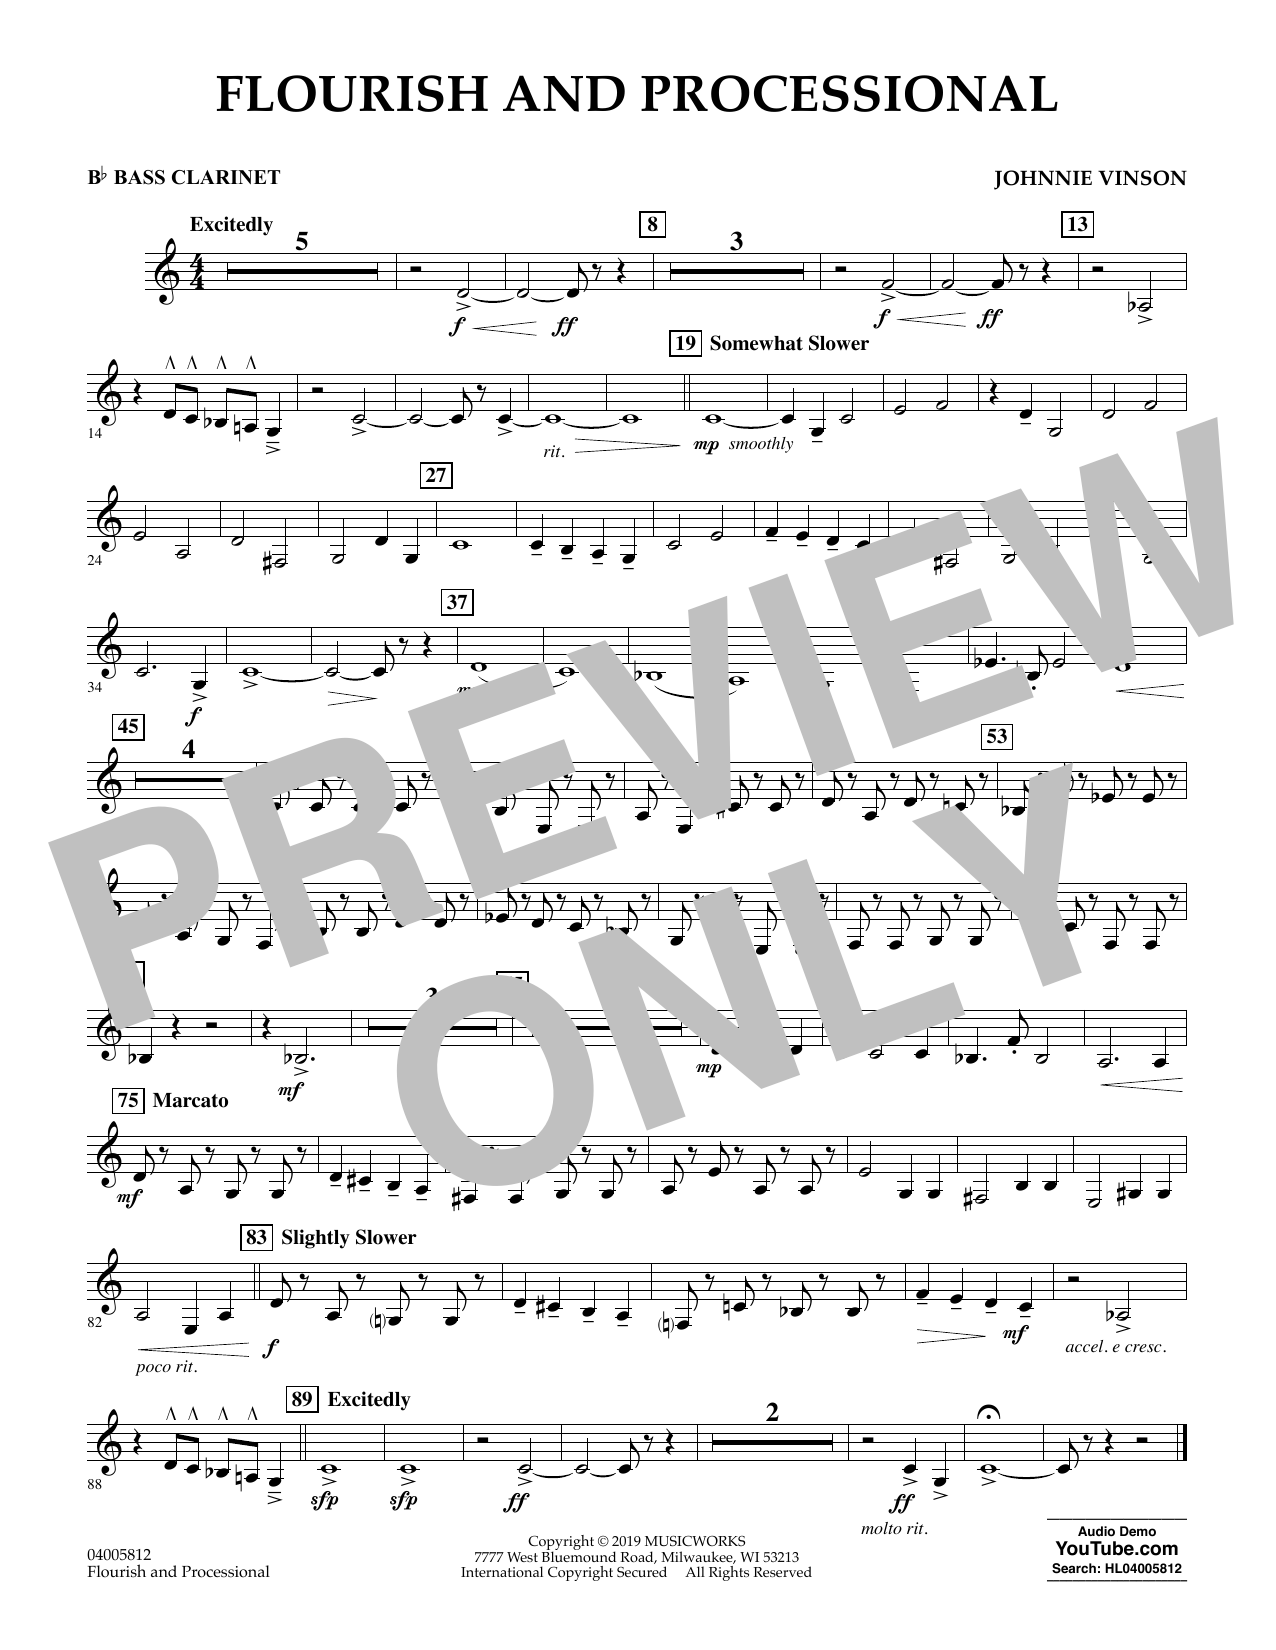 Johnnie Vinson Flourish and Processional - Bb Bass Clarinet sheet music preview music notes and score for Concert Band including 1 page(s)